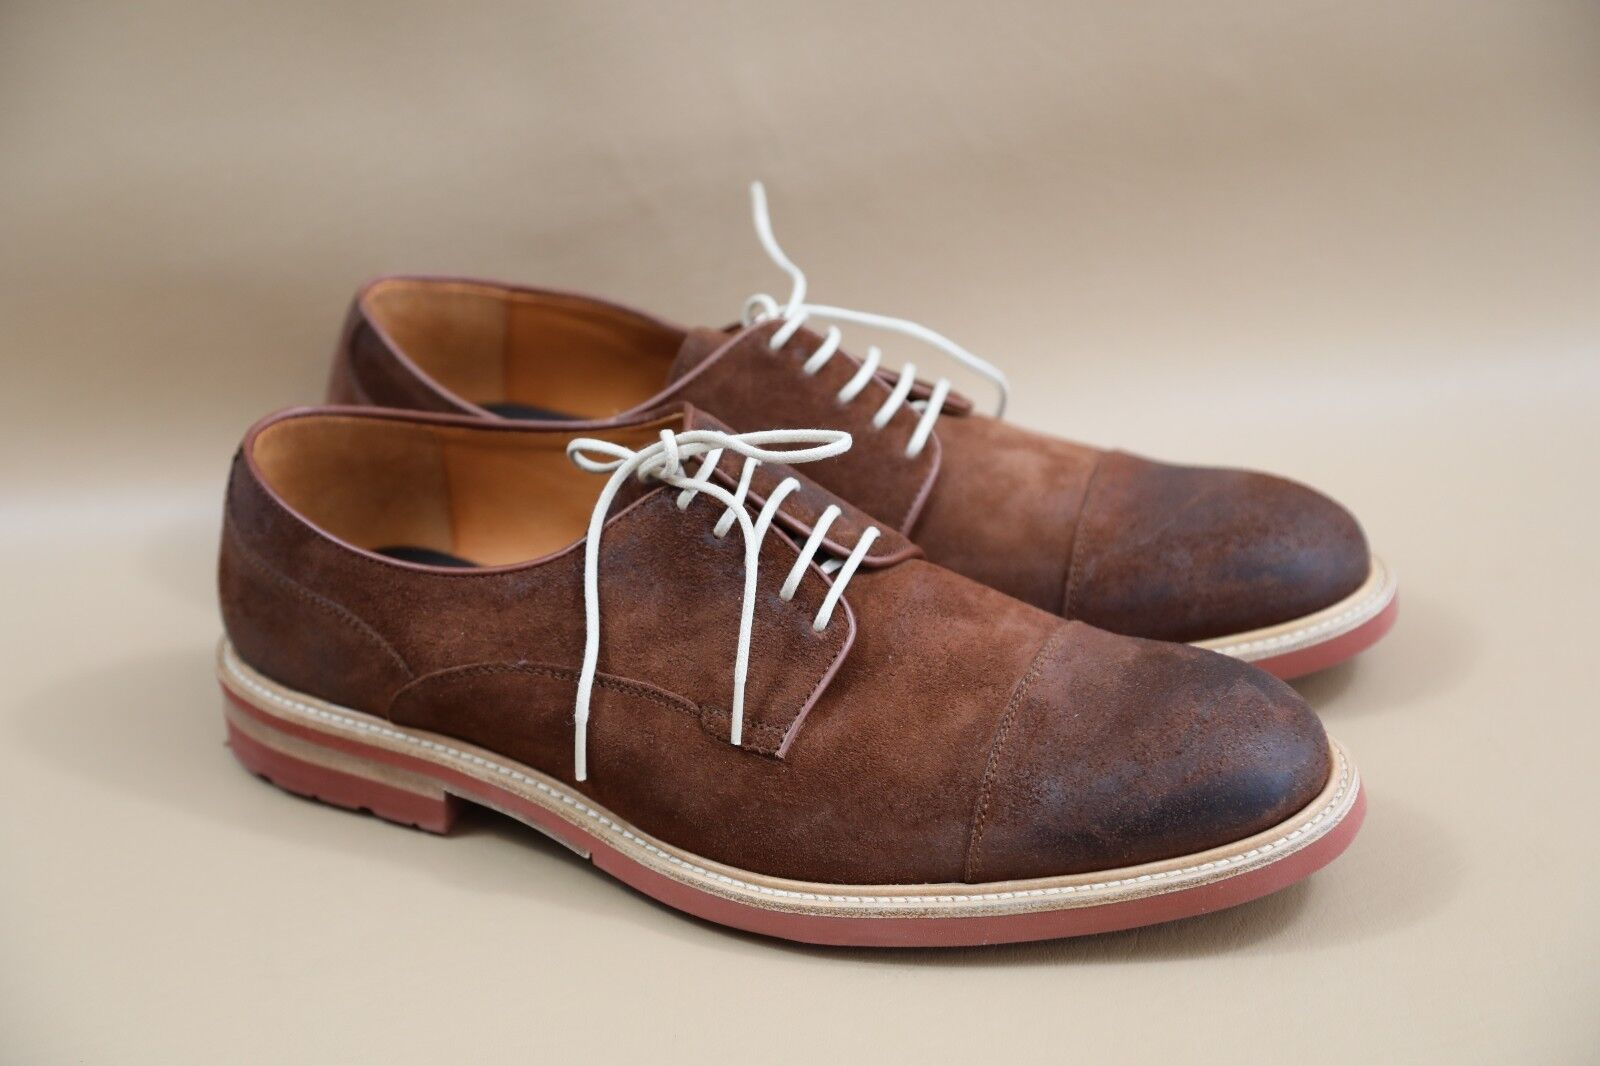 #88 Crosby Square Nubuck Pelle Oxfords Taglia 46